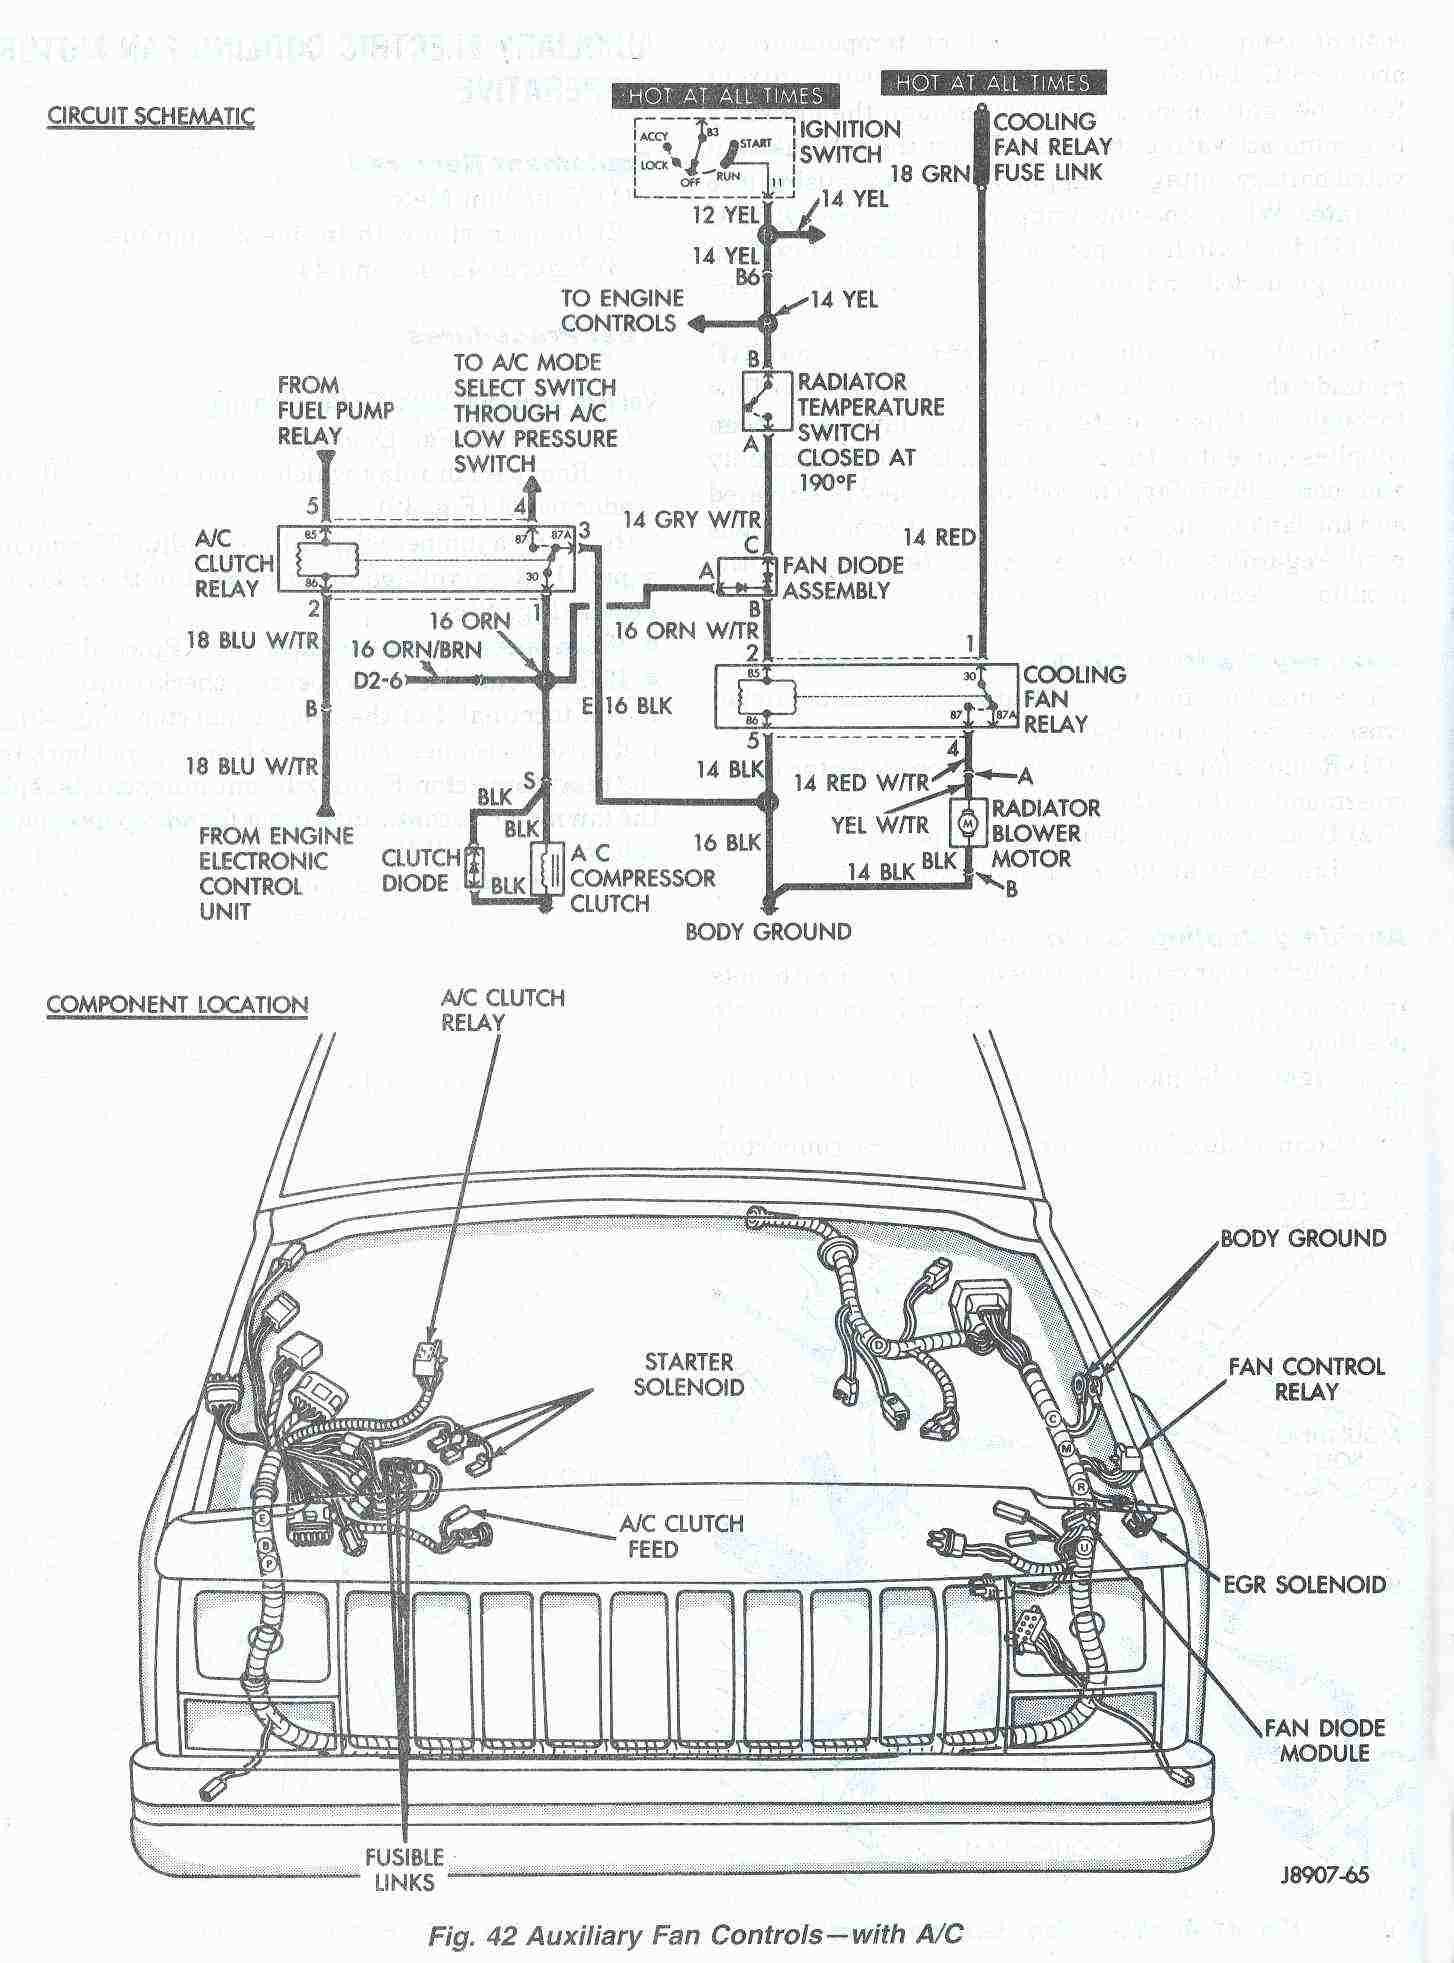 e8c83109bad6c41d377df8c1cb7a8dc4 jeep comanche wiring diagram lexus gx wiring diagram \u2022 wiring Jeep Cherokee Wiring Harness at gsmx.co